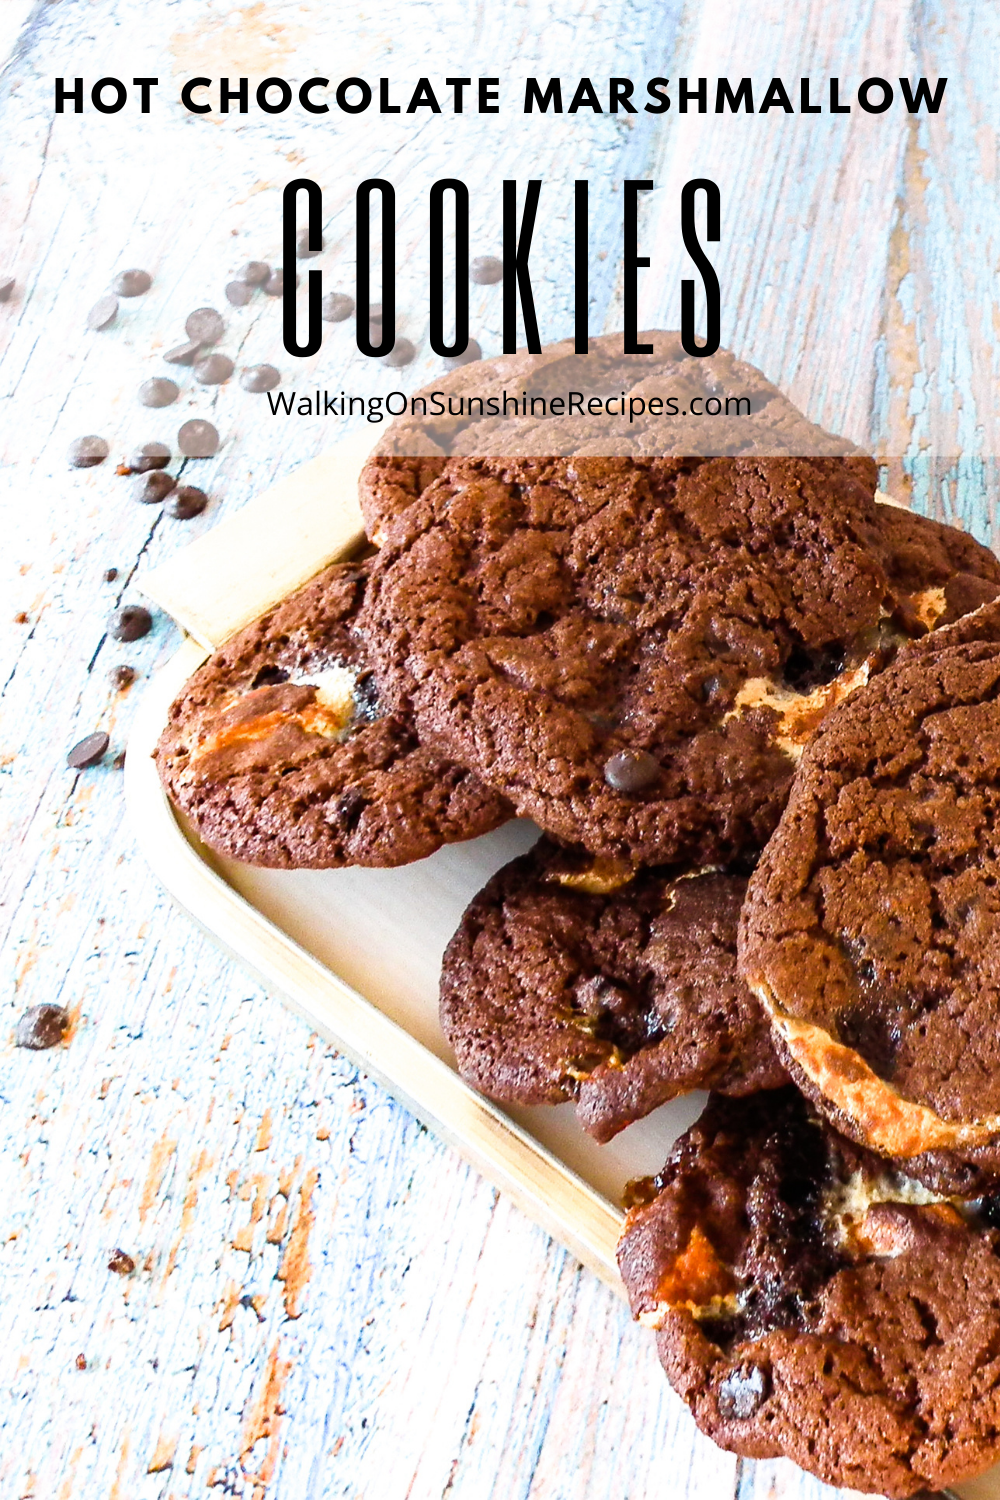 chocolate cookies made with hot chocolate mix and marshmallow bits.